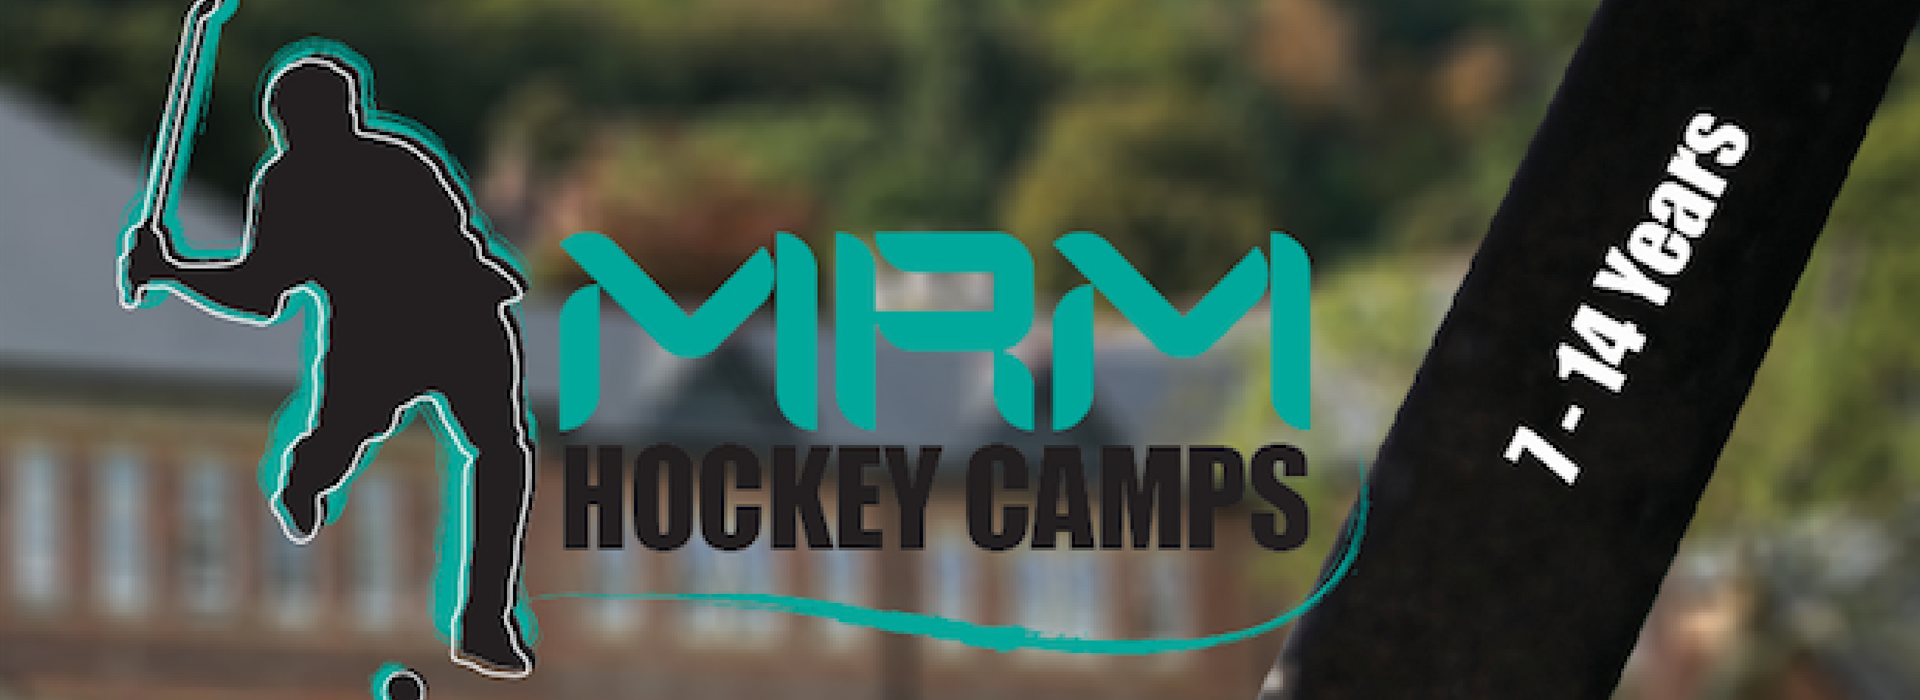 MRM Hockey Camp Summer 2018